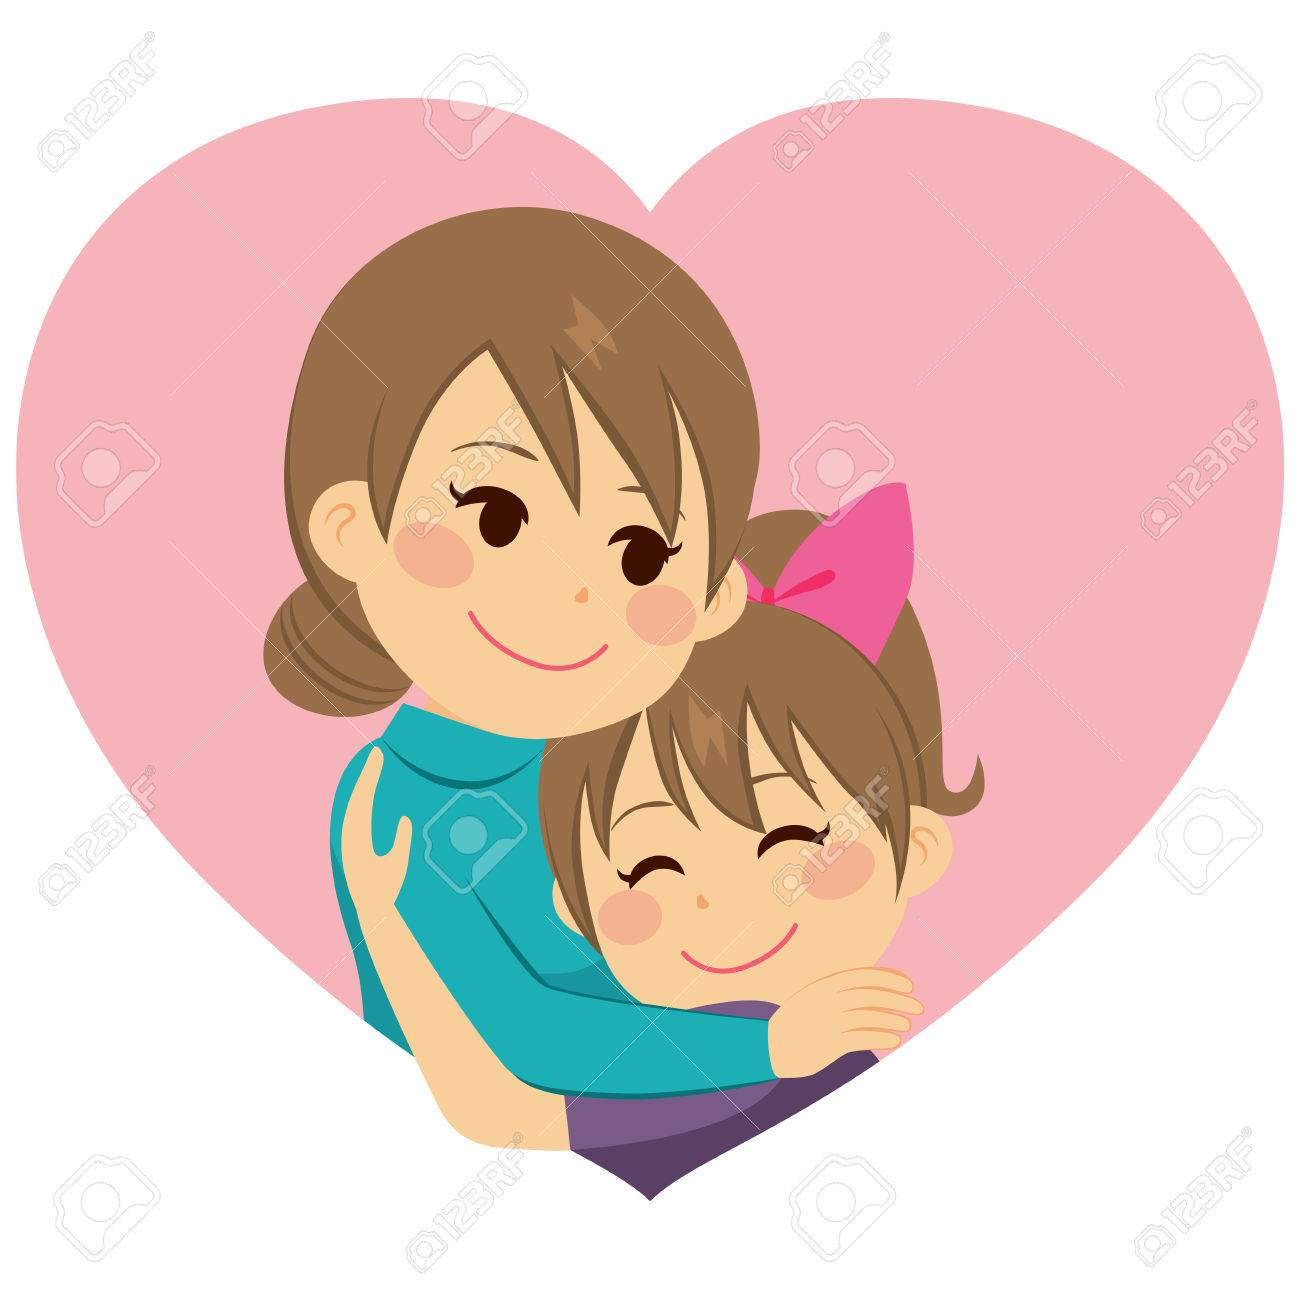 cute little girl daughter hugging mom celebrating mother s day rh 123rf com mommy and daughter clipart mother and daughter clipart free